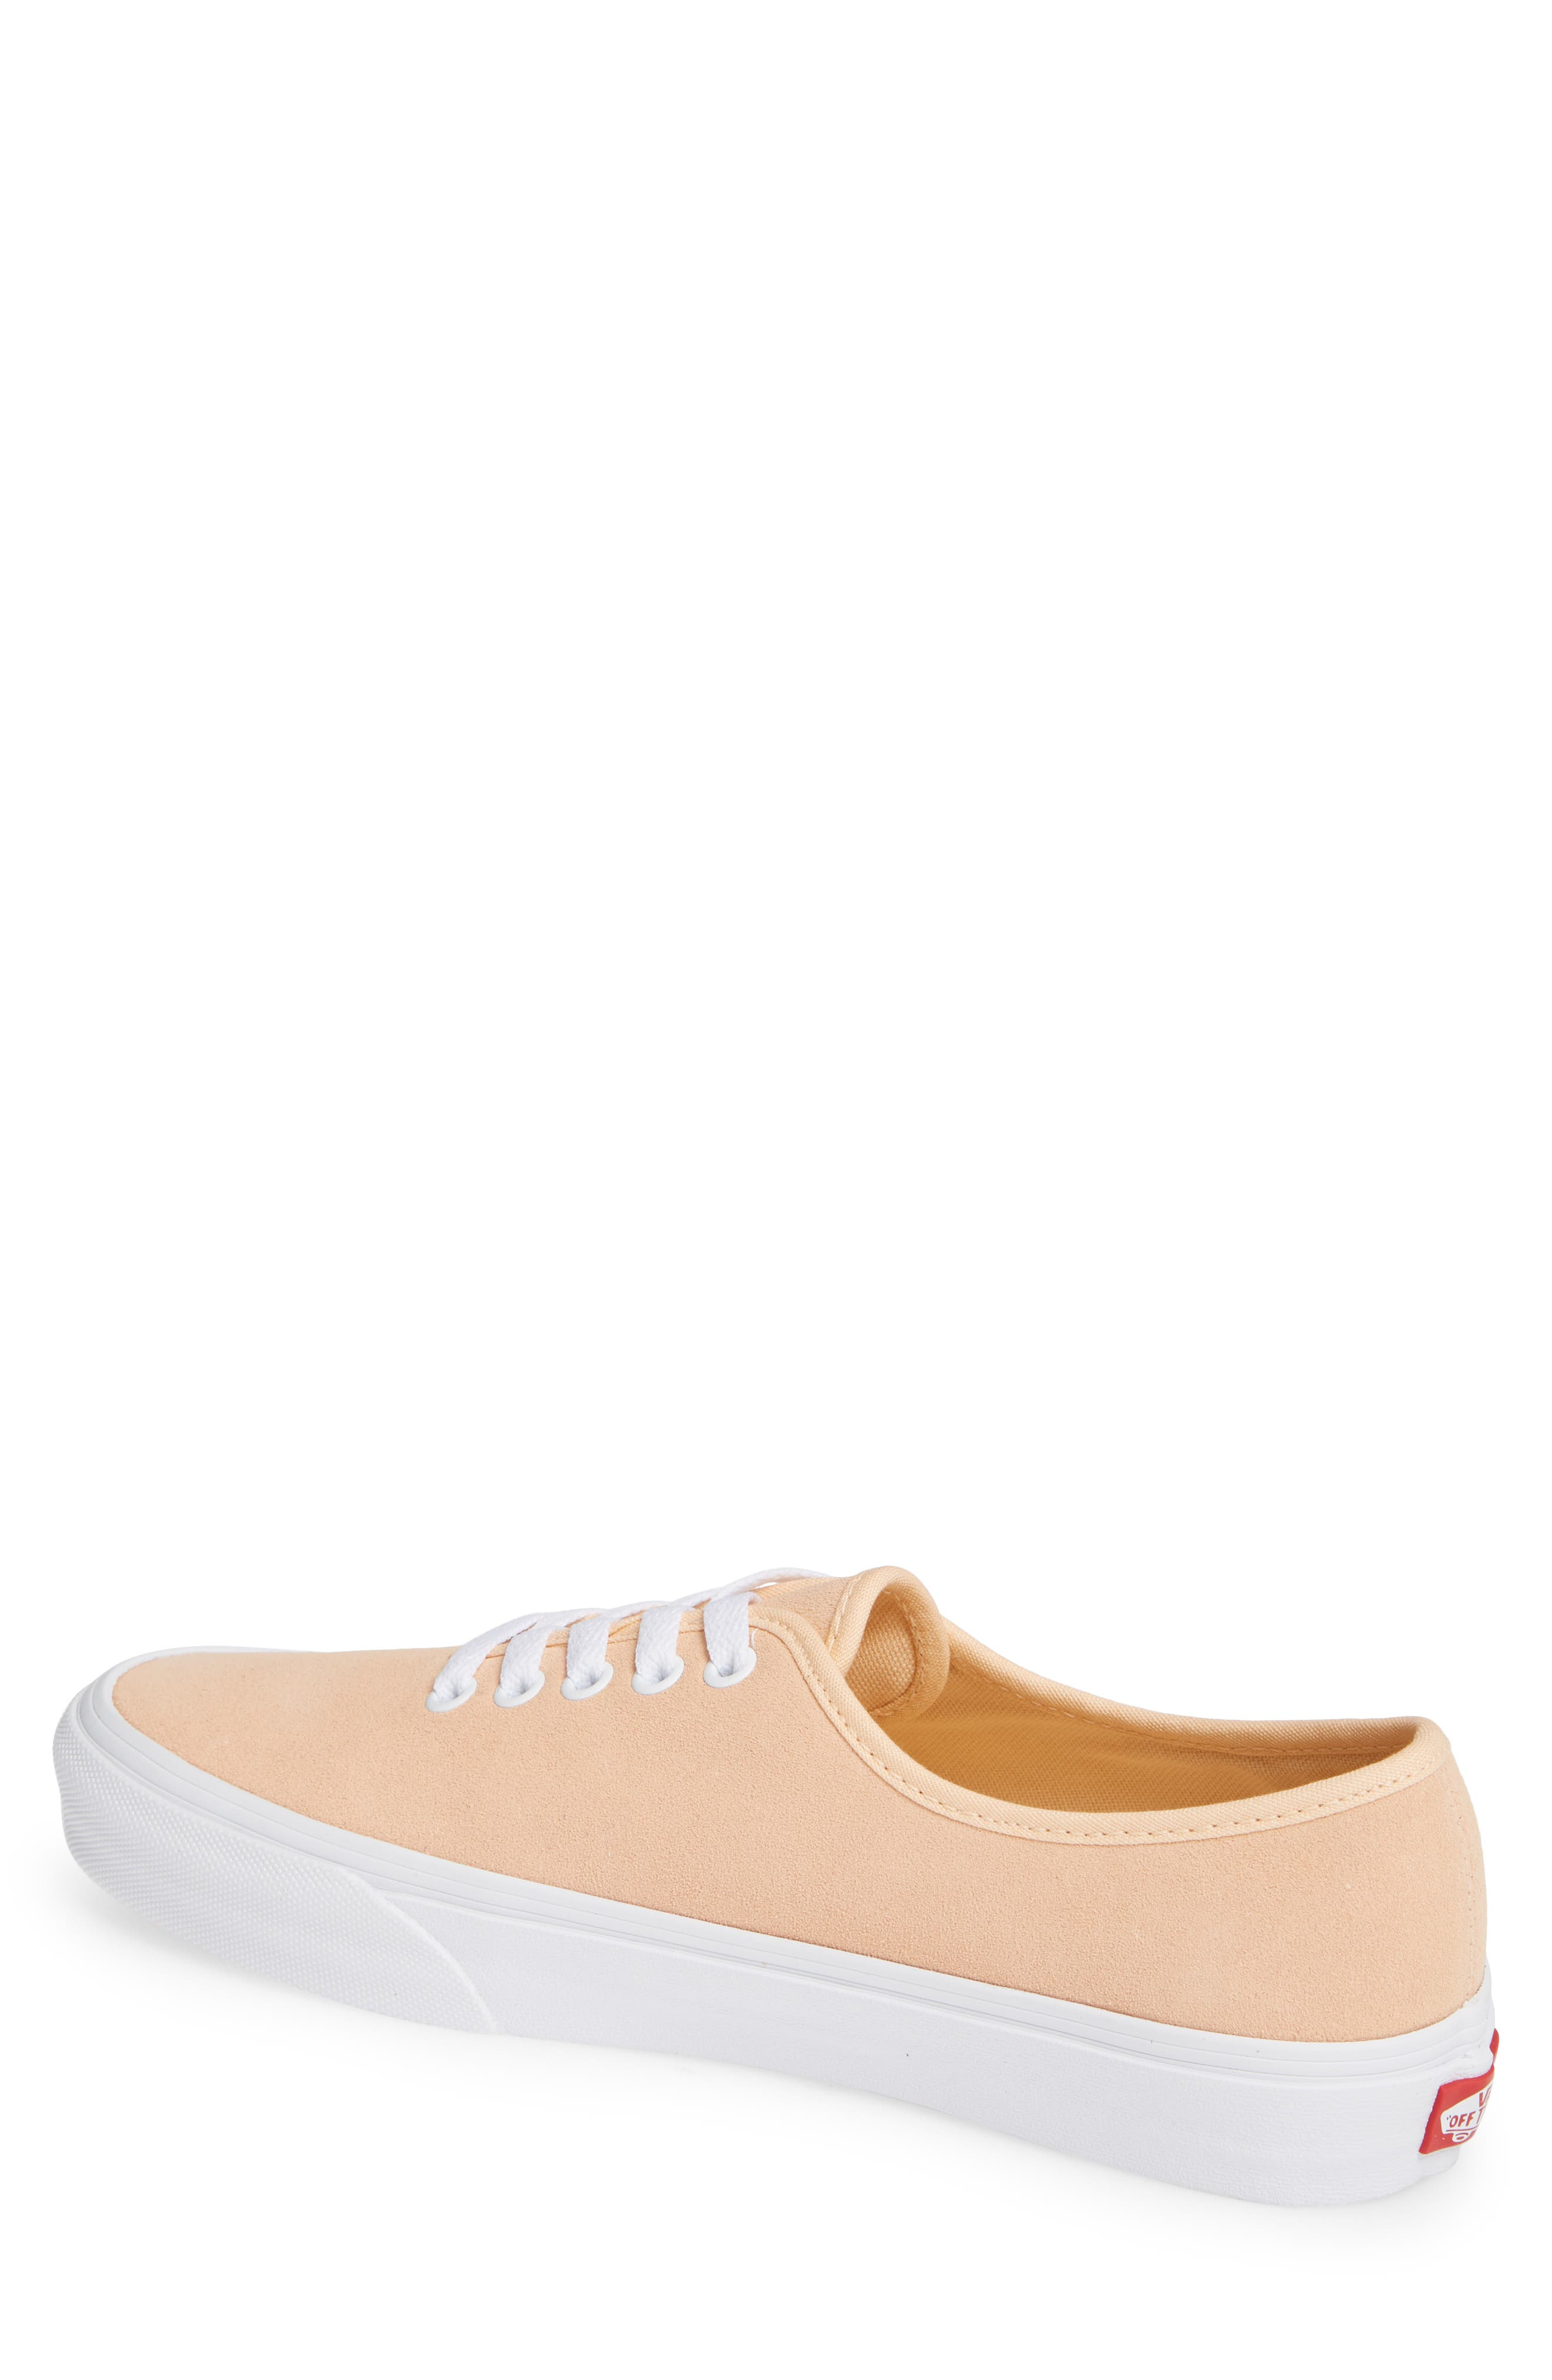 Authentic One-Piece Sneaker,                             Alternate thumbnail 2, color,                             BLEACHED APRICOT/ SUEDE